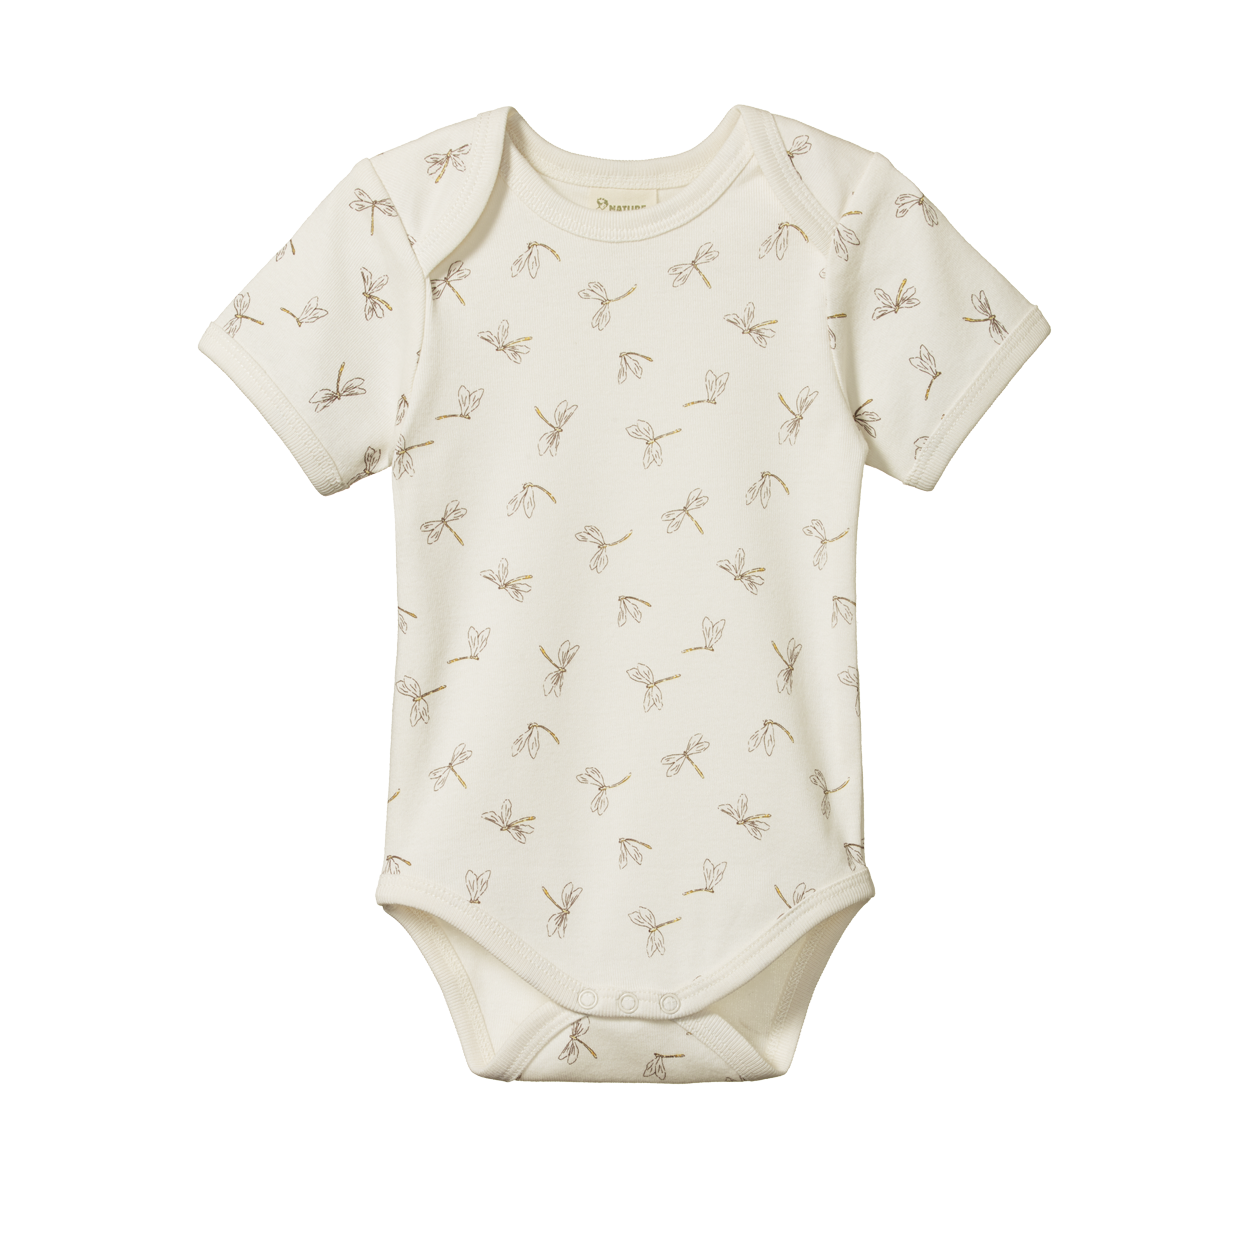 SHORT SLEEVE BODYSUIT - DRAGONFLY